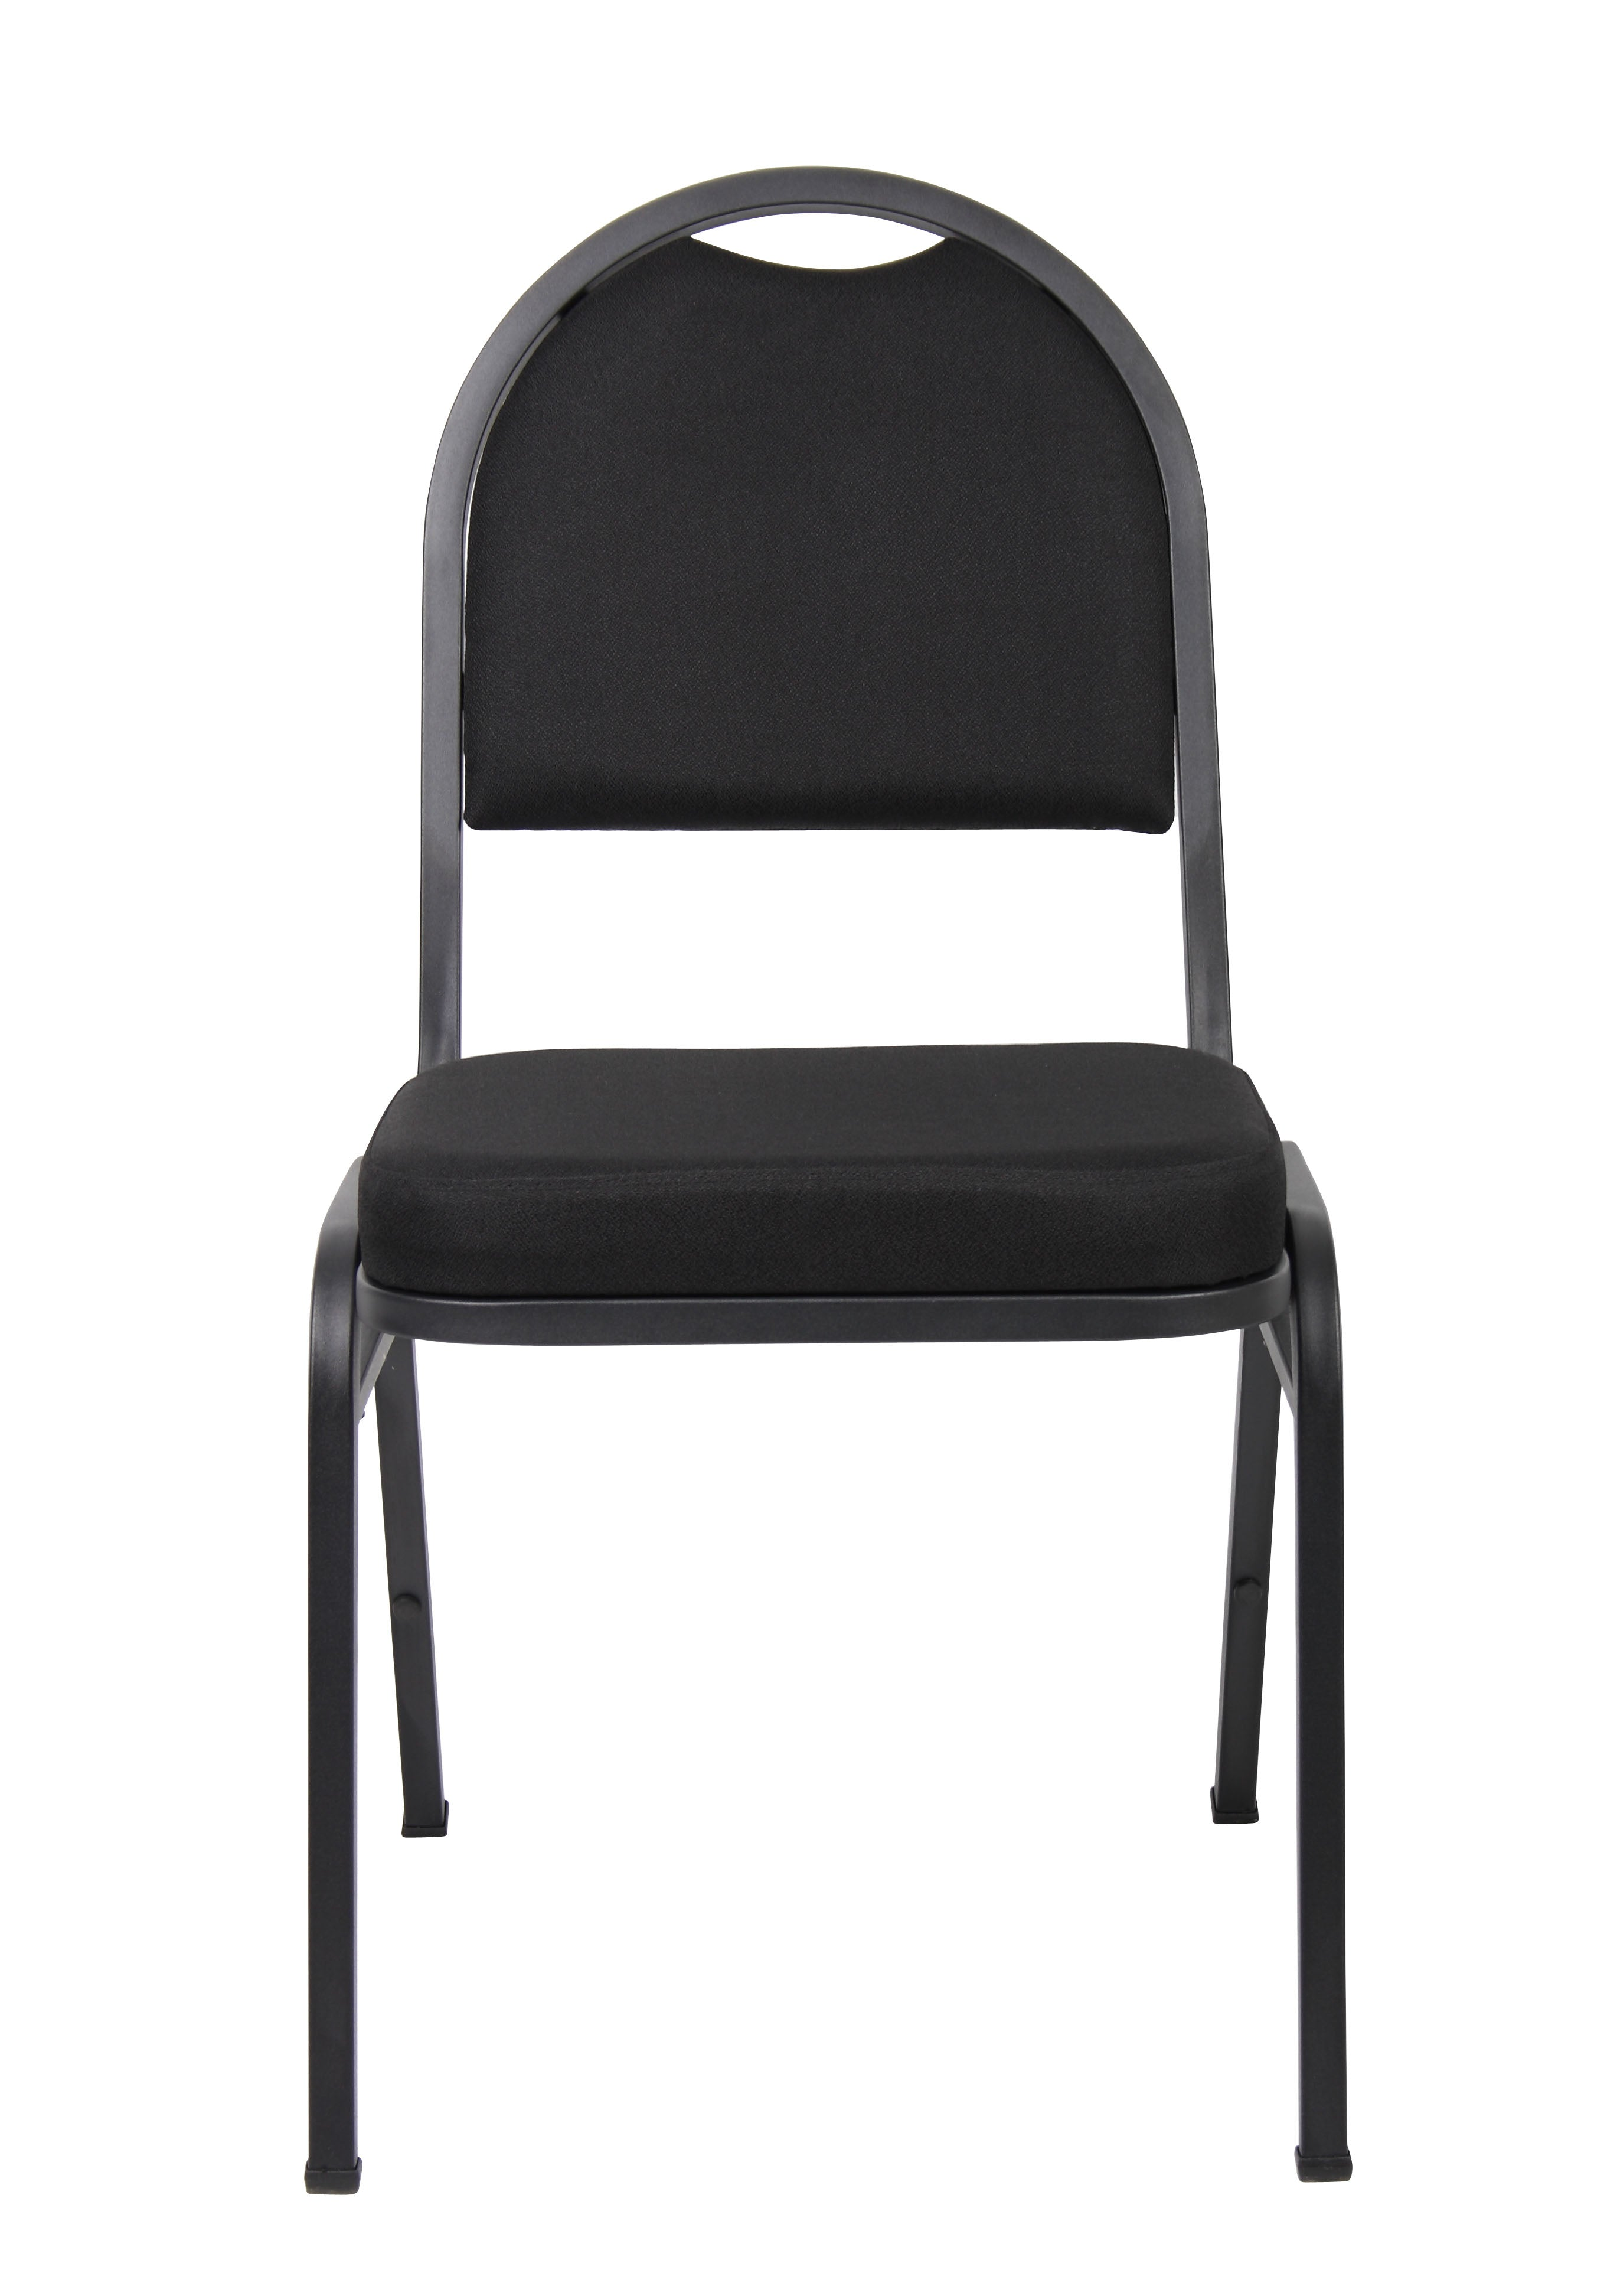 Modern Black Fabric & Steel Guest or Conference Chair (Set of 4)